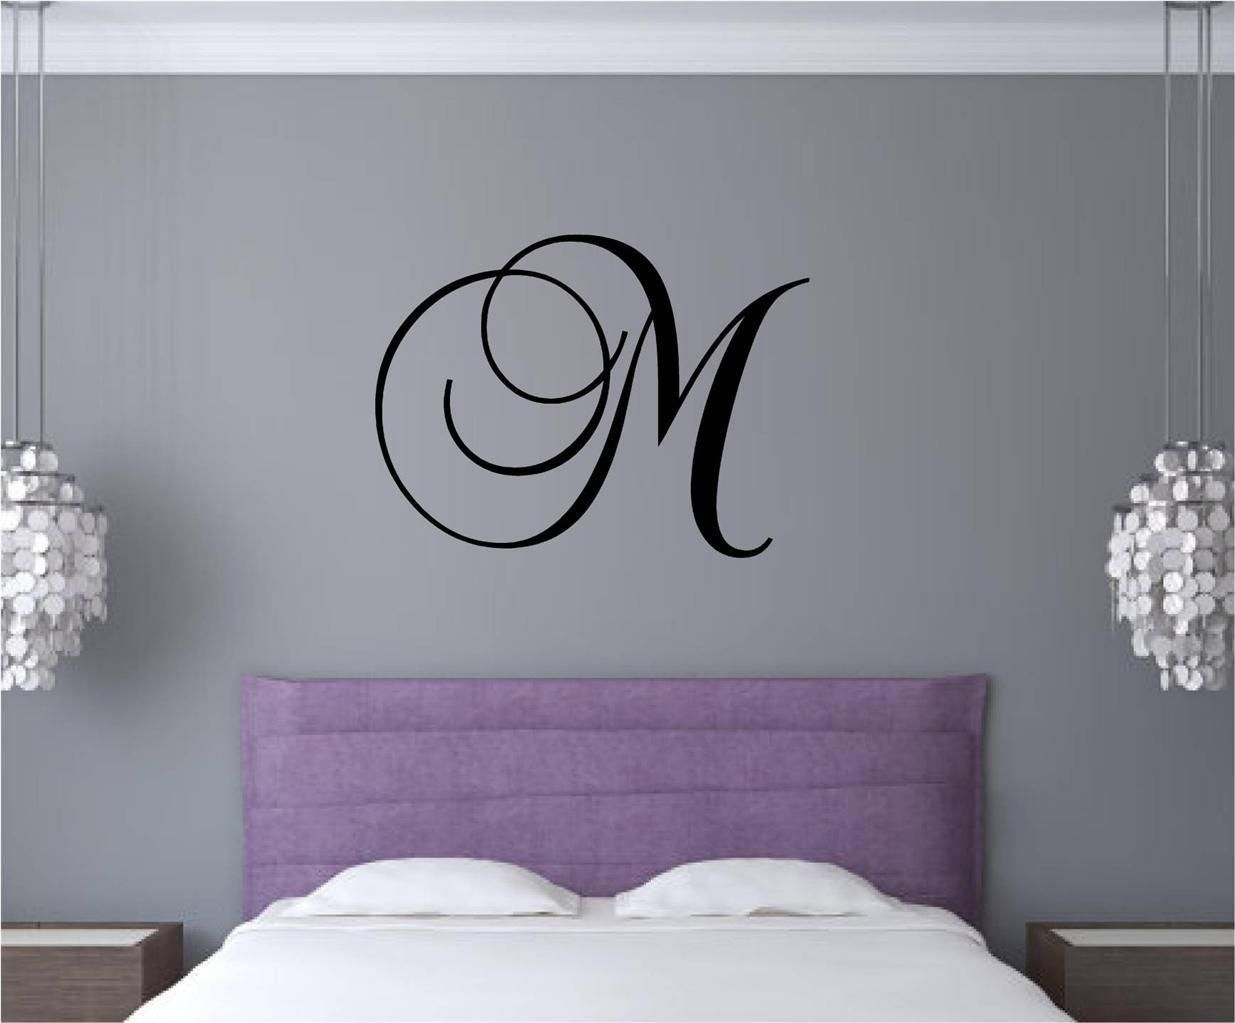 Custom monogram letter vinyl decal wall art stickers words dorm room